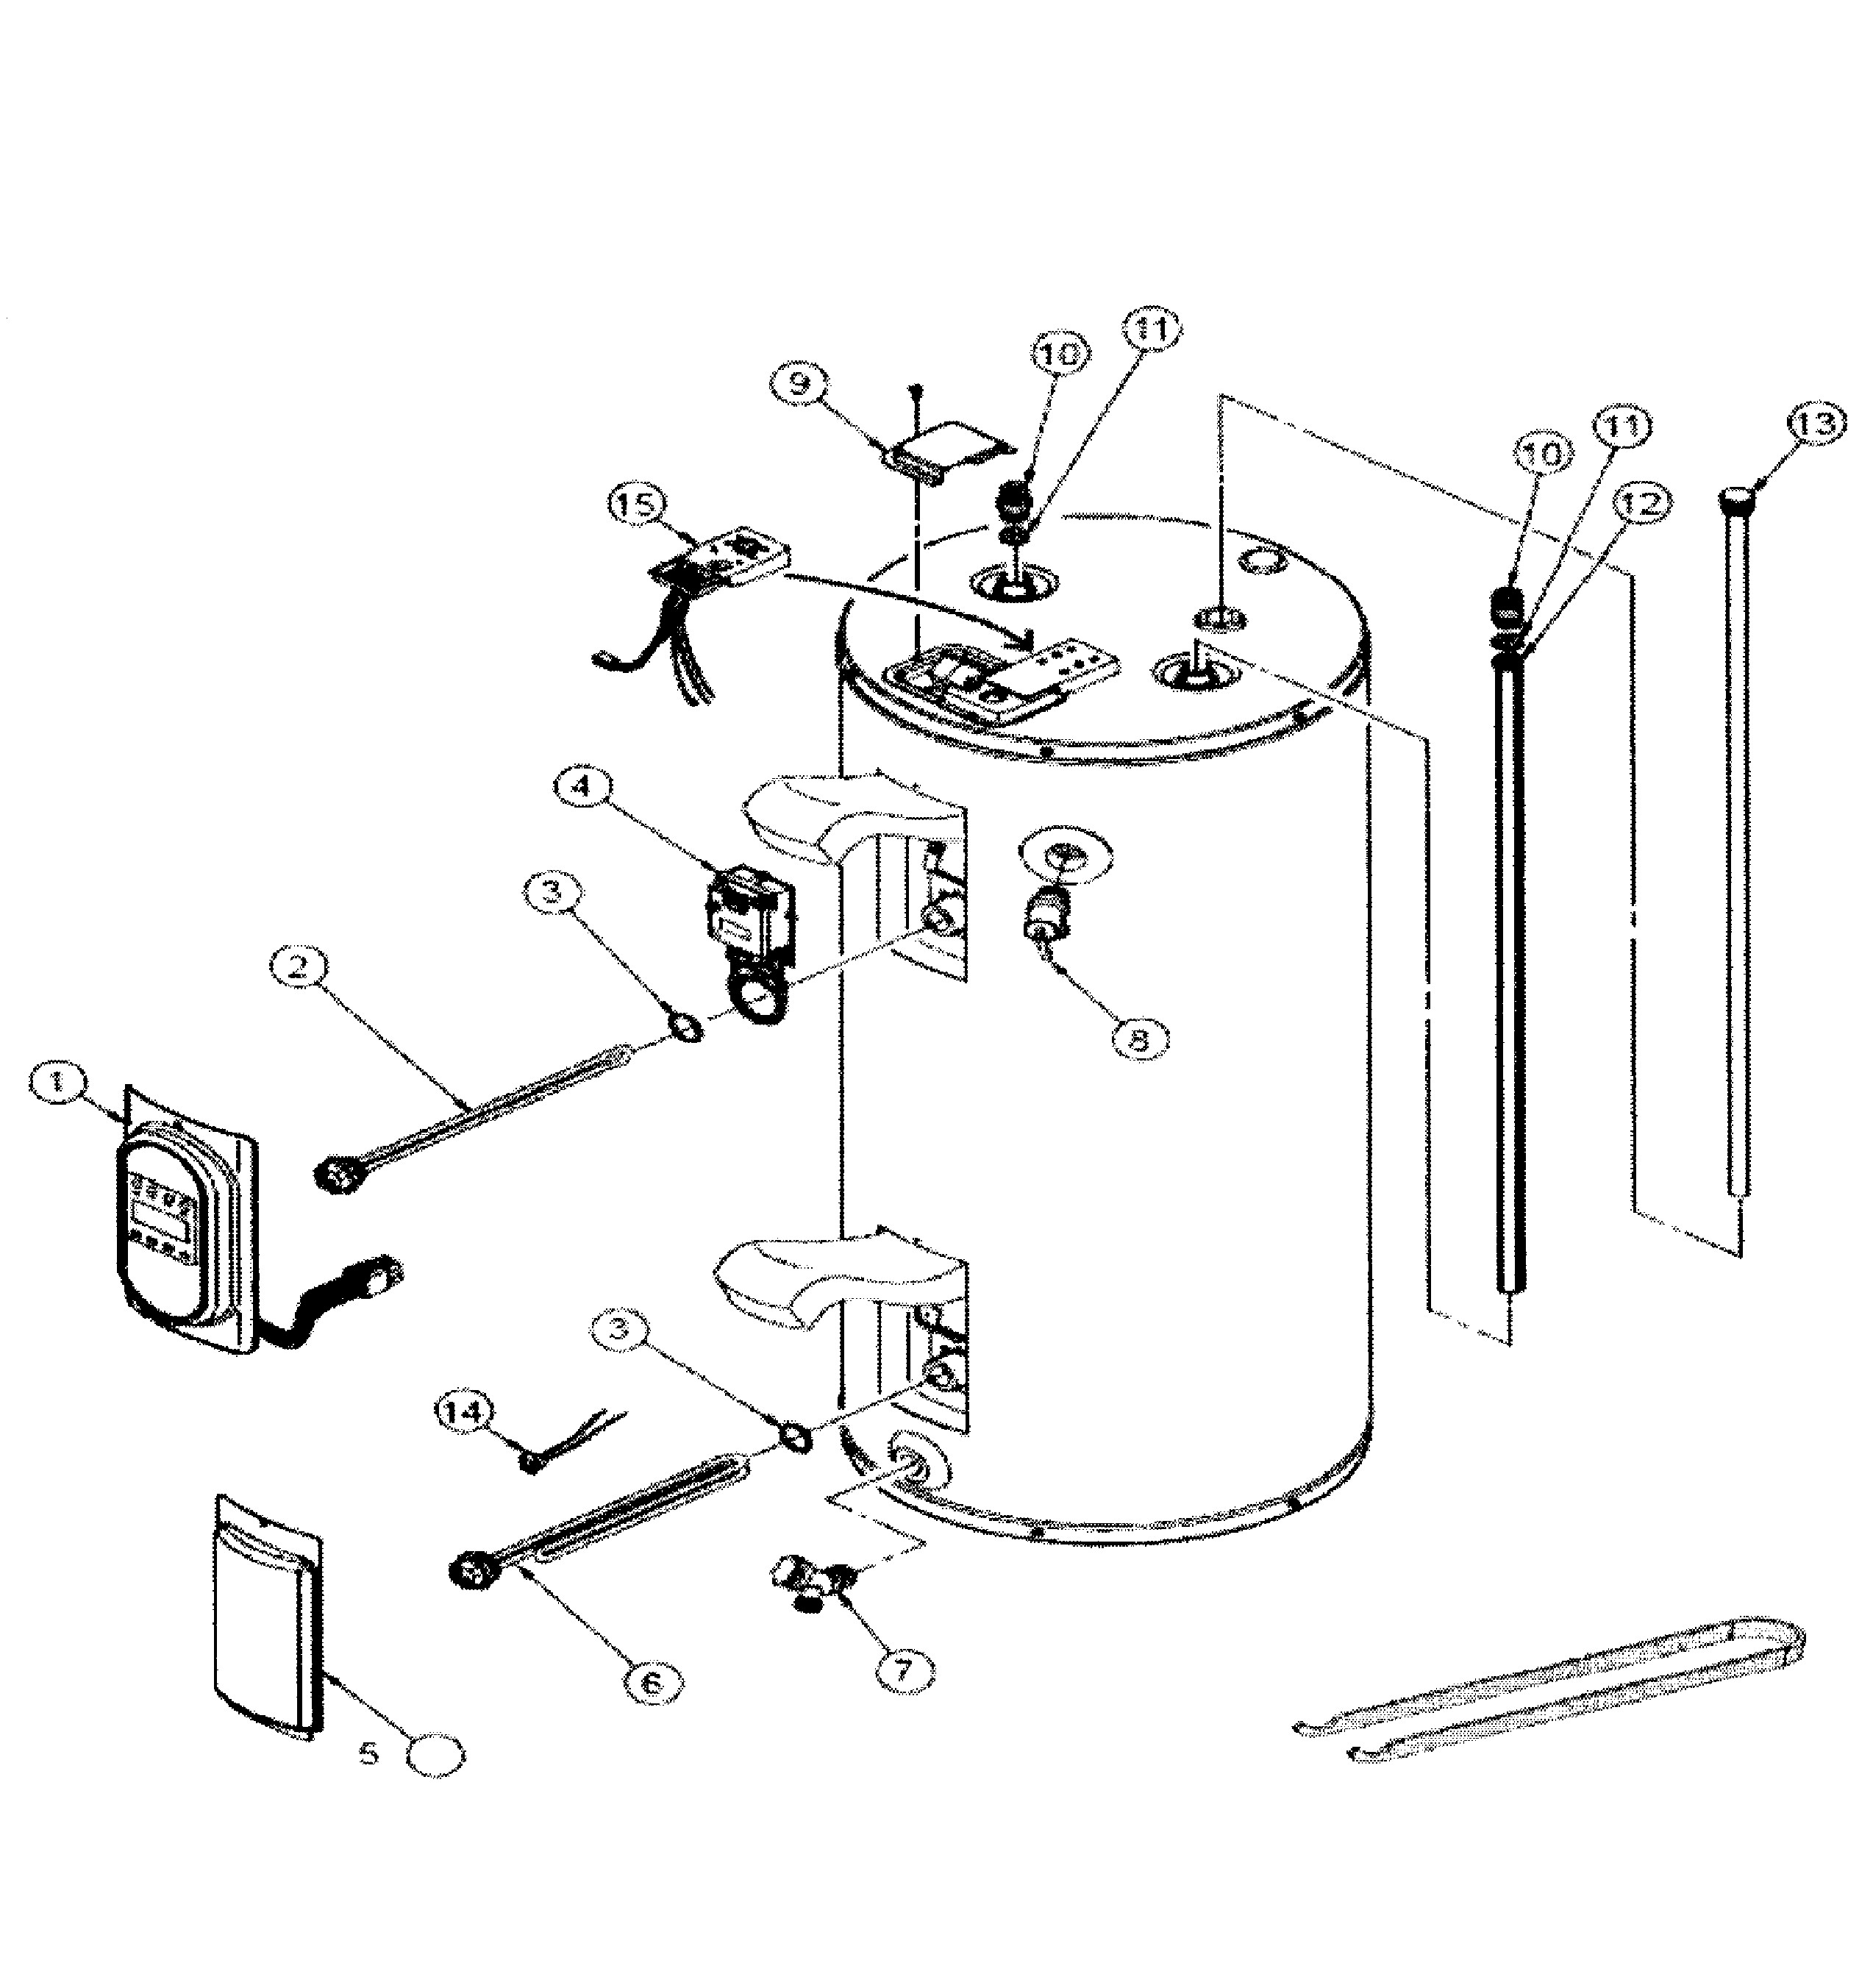 Electric Water Heater Parts Diagram Ao Smith Water Heater Parts Diagram Propane Burner Motor Replacement Of Electric Water Heater Parts Diagram